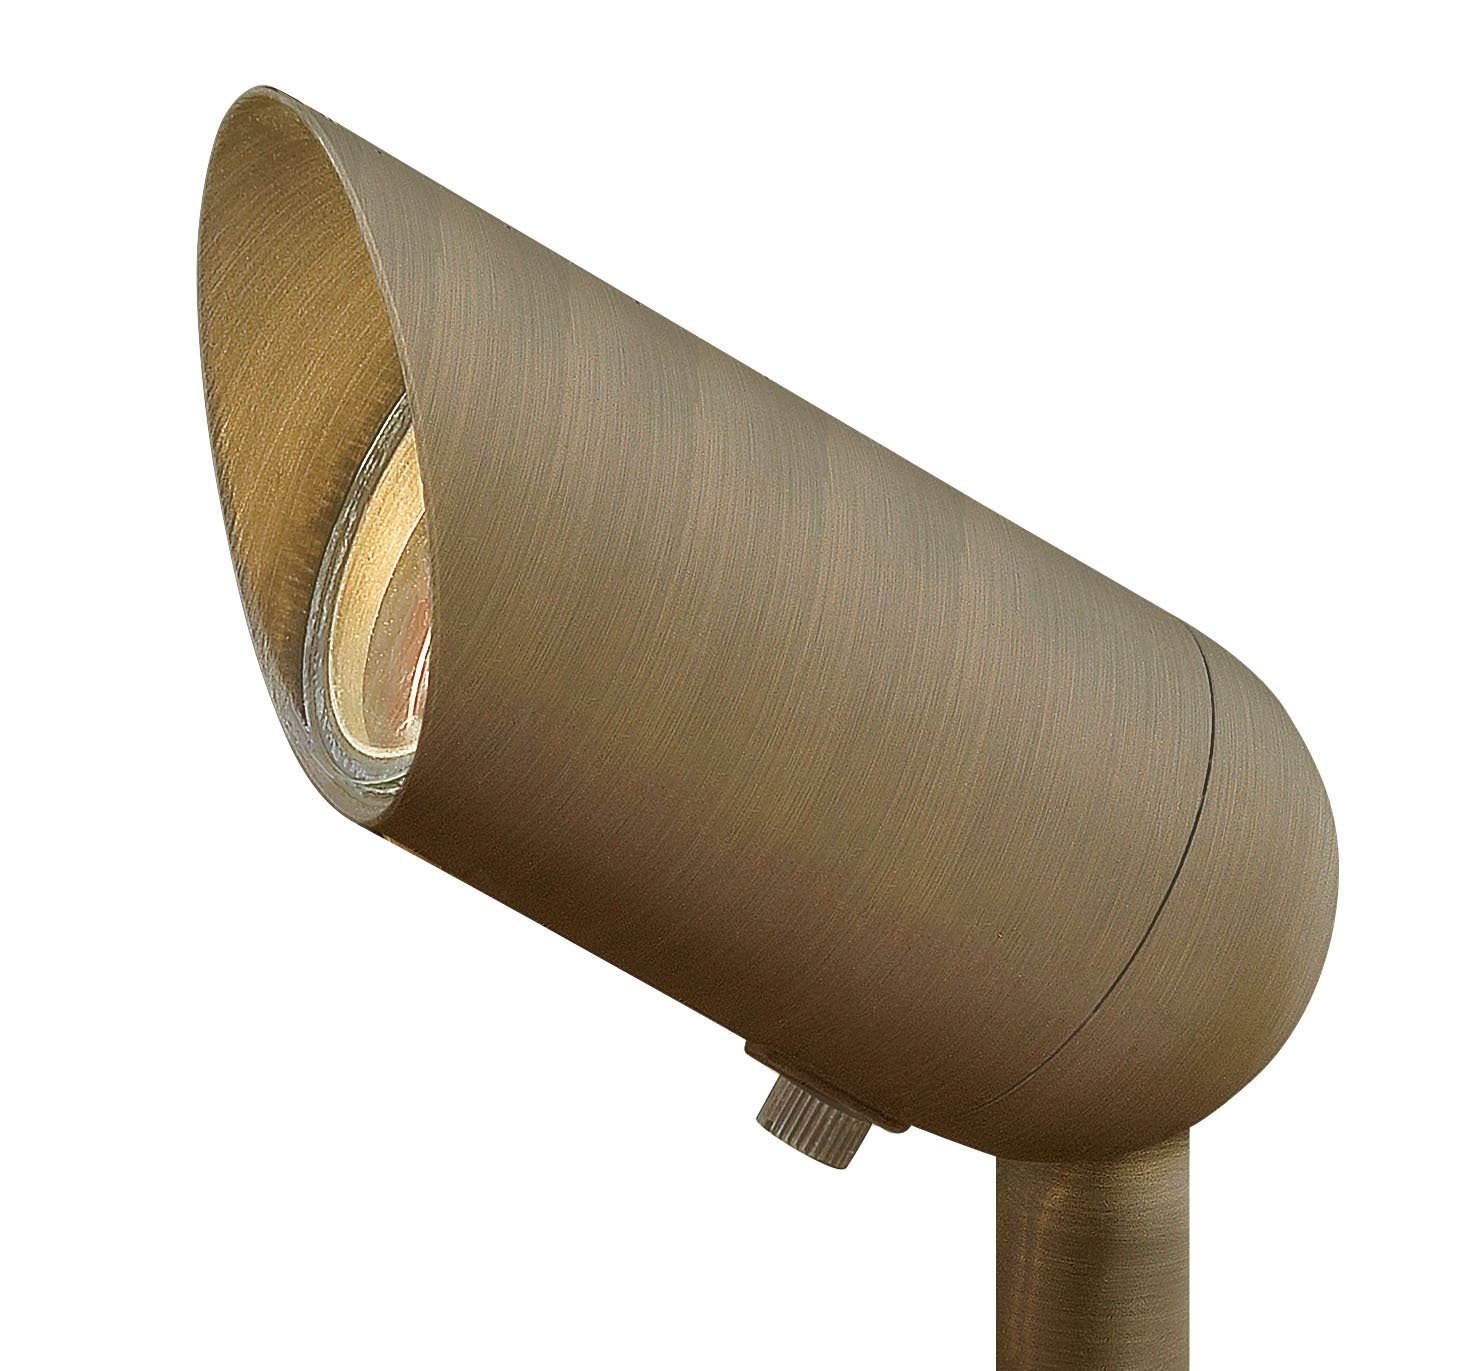 Hinkley Lighting 1536MZ-8WLEDMD Led Spot Light, Matte Bronze